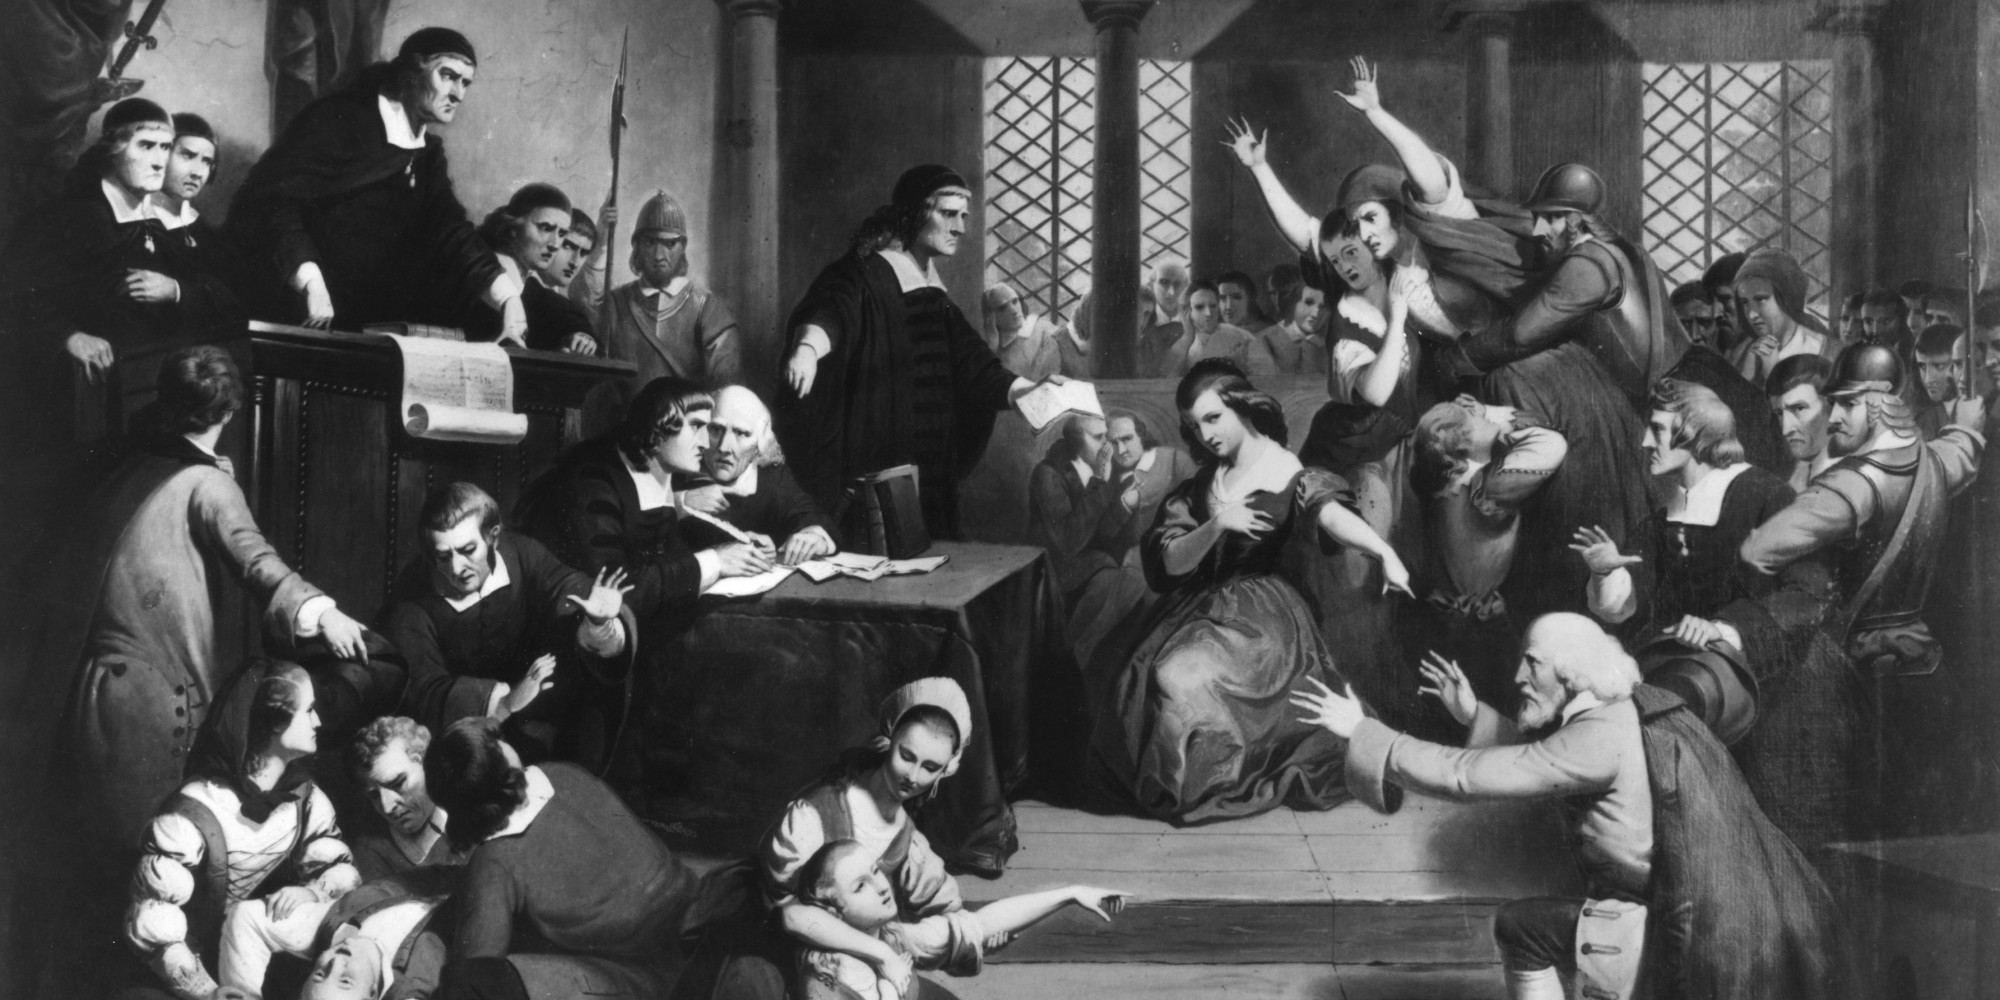 a speech on the salem witch trials in 1692 View essay - introduction to the crucible salem witch trials internet activity from econ 101 at east carolina university name_daniel otero_ wouldyouhavesurvivedthesalemwitch trials.